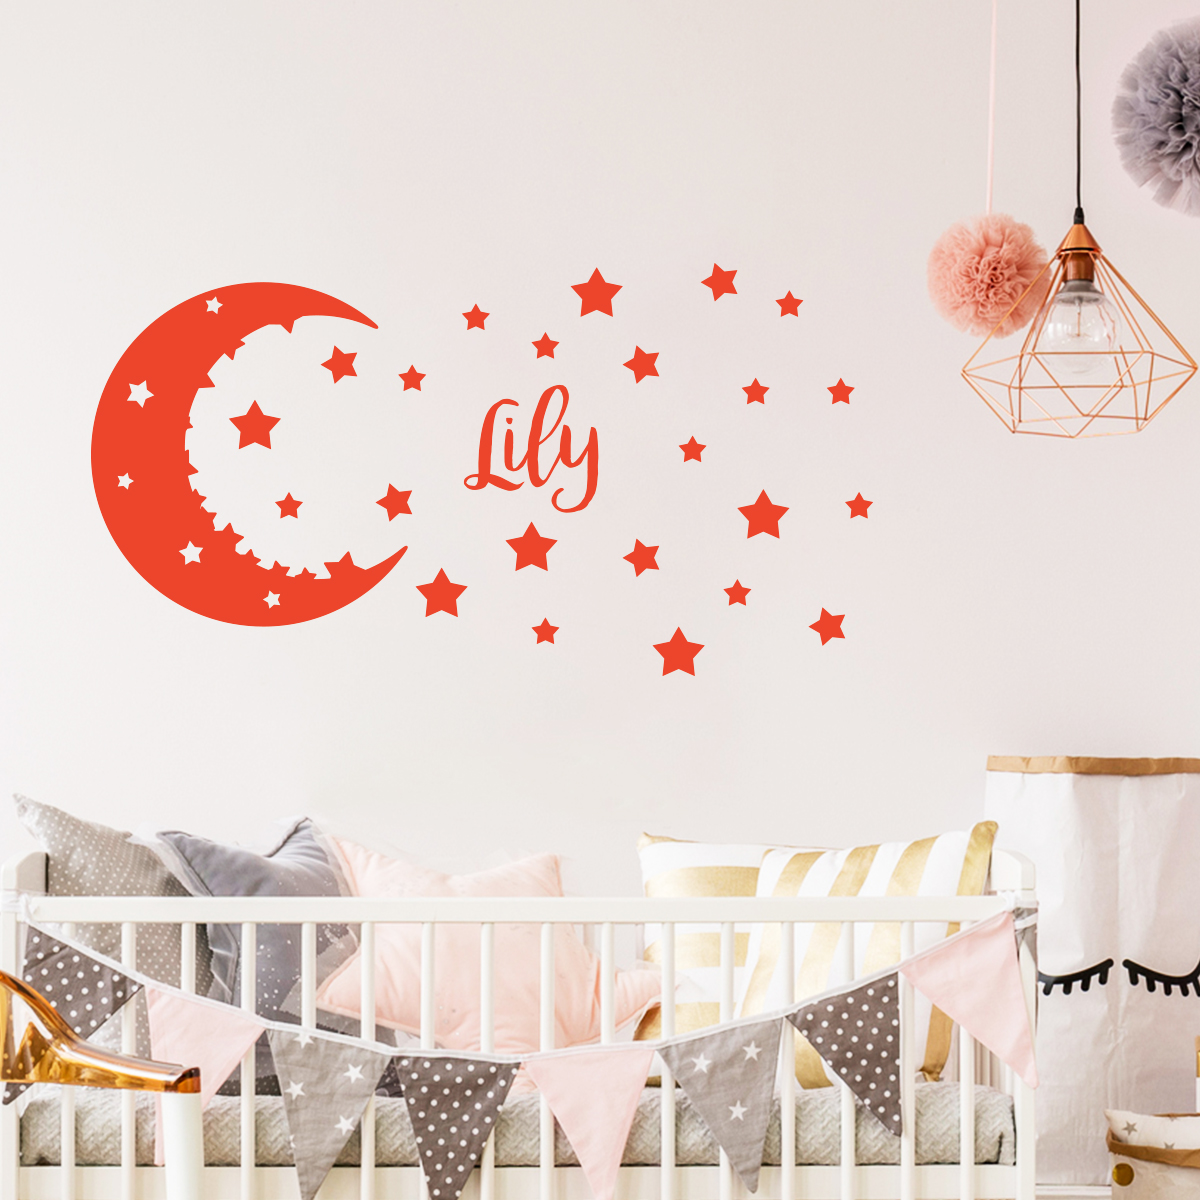 sticker pr nom personnalis ciel toil mini stickers pr nom perso ambiance sticker. Black Bedroom Furniture Sets. Home Design Ideas